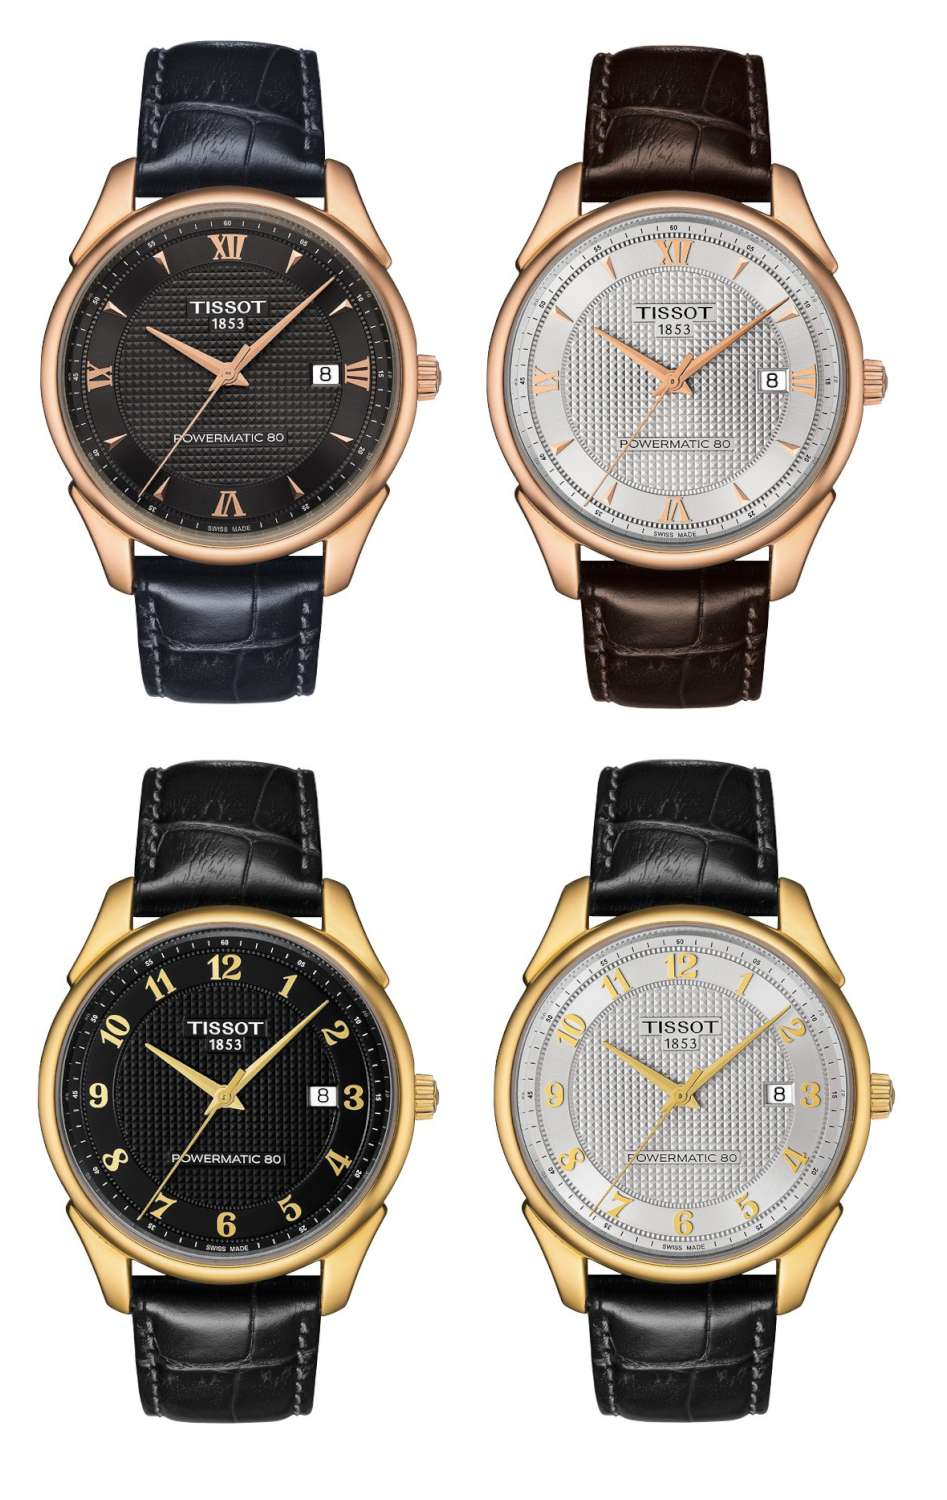 Tissot_Vintage_four_watches-1500